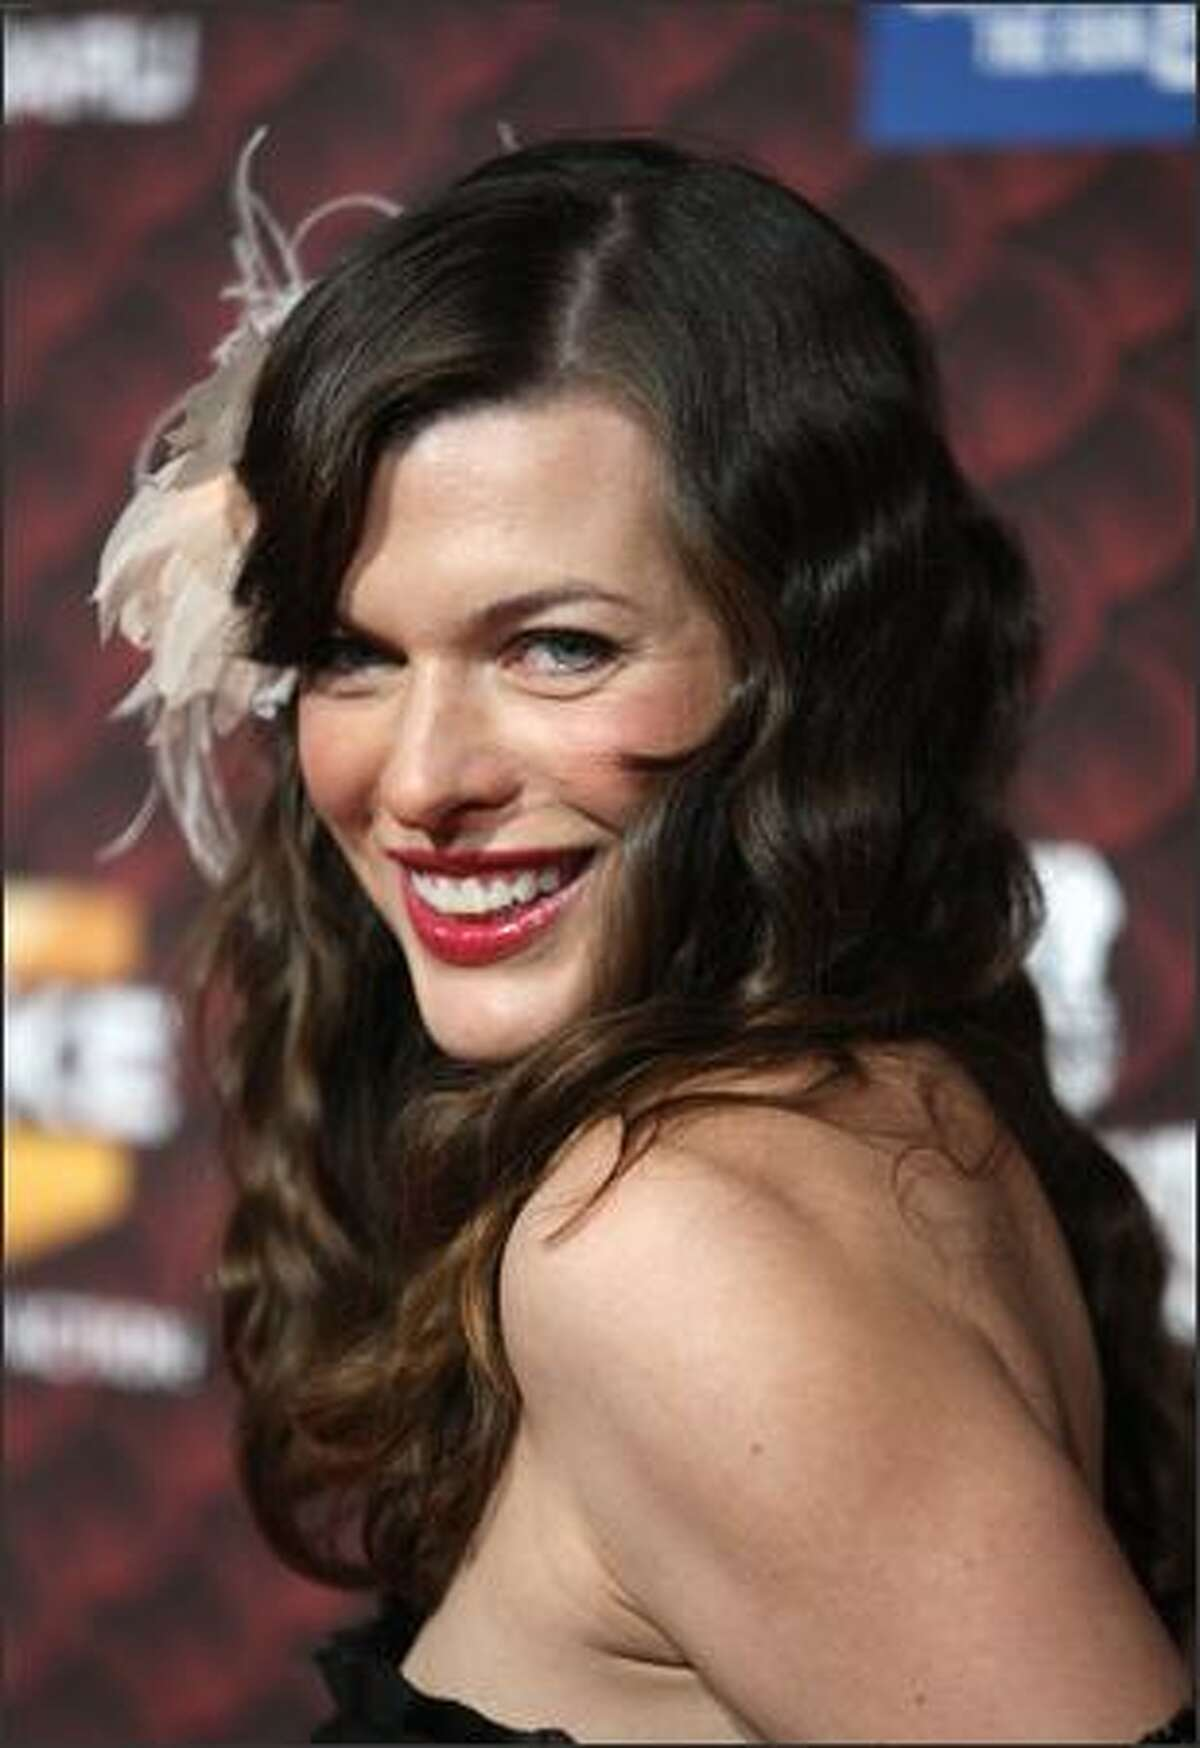 Actress Milla Jovovich arrives at Spike TV's 2008 Scream awards held at the Greek Theater on Saturday in Los Angeles, Calif.